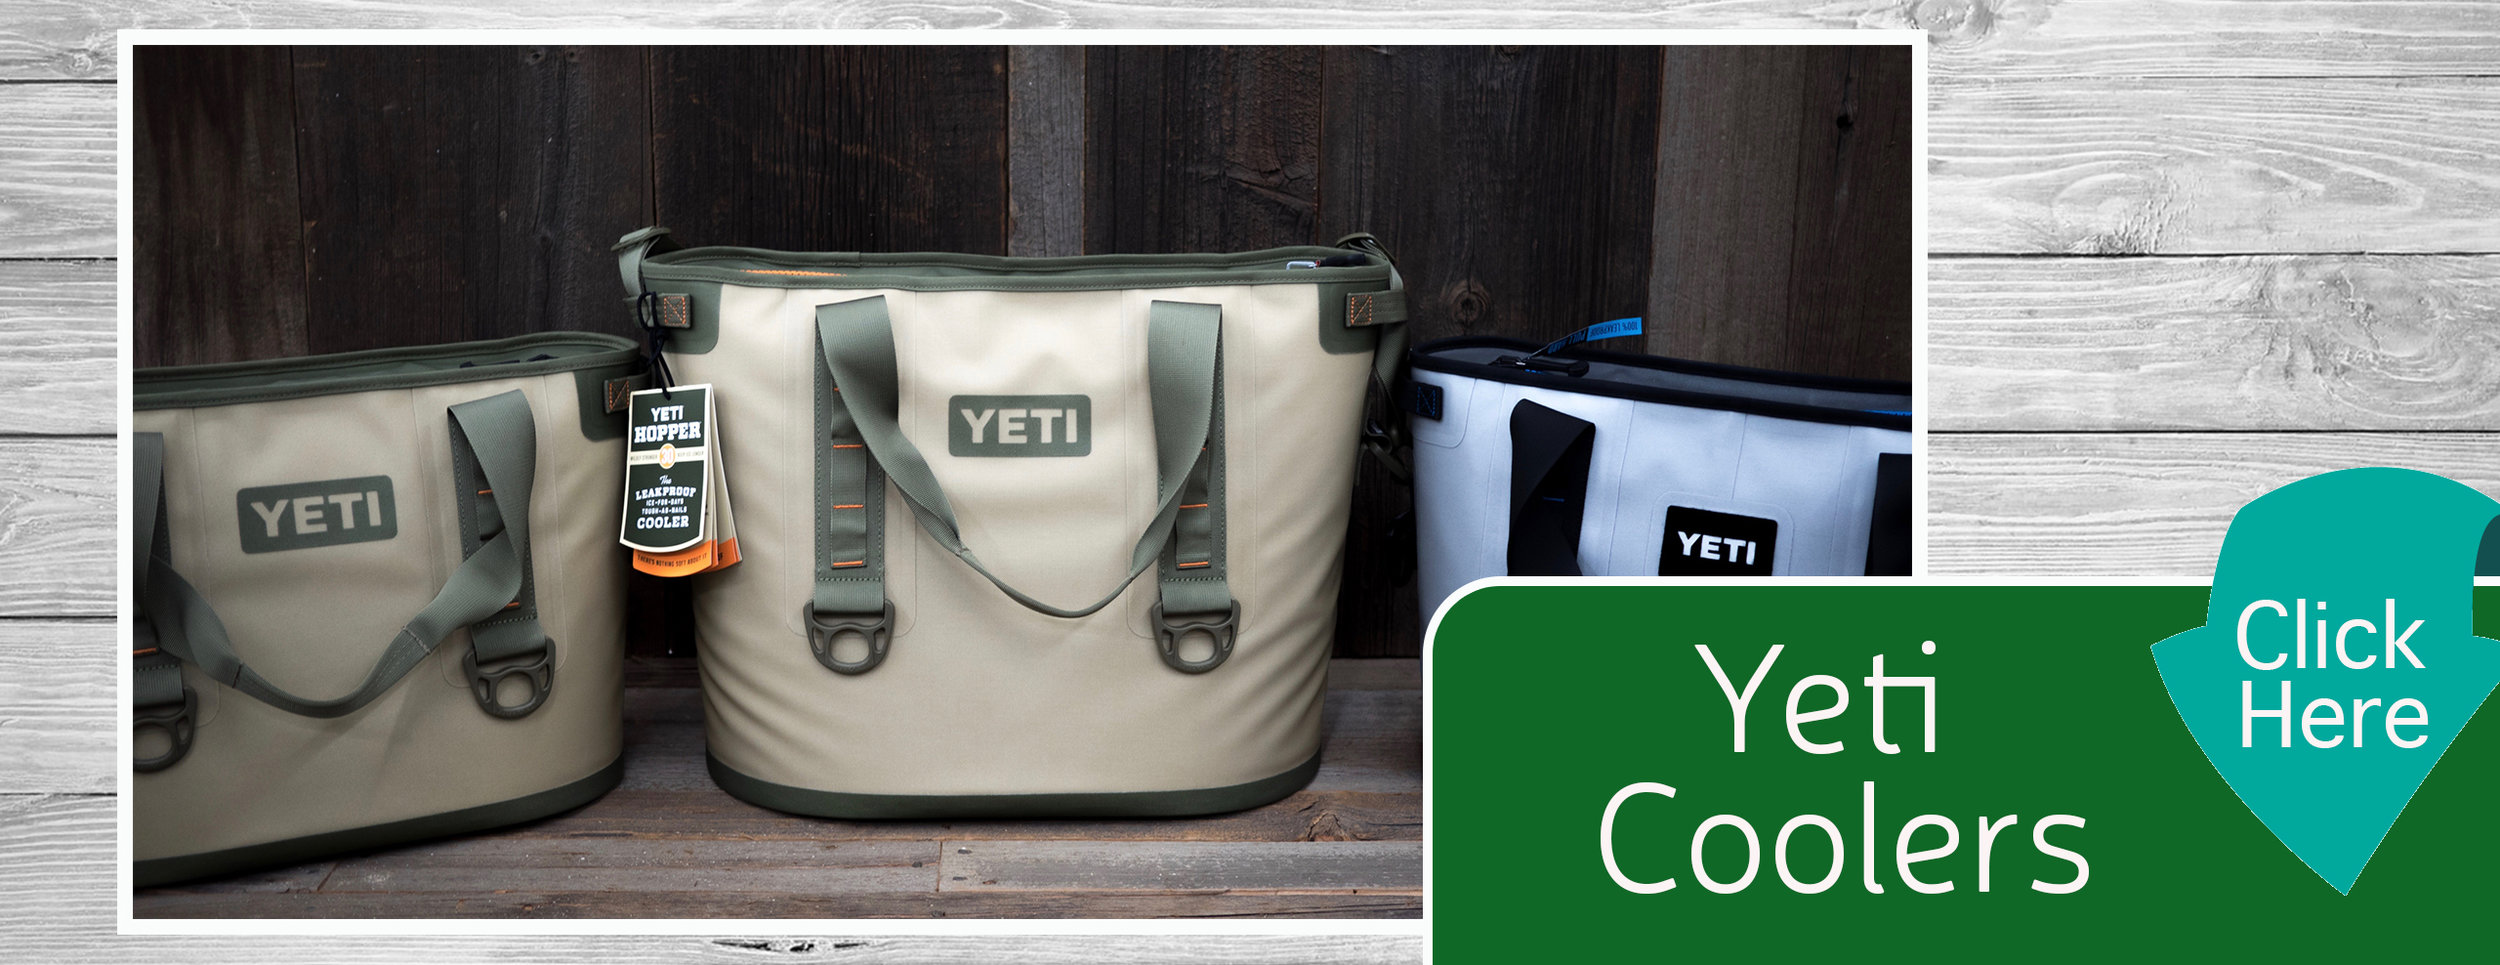 Yeti Coolers Home Page Banner